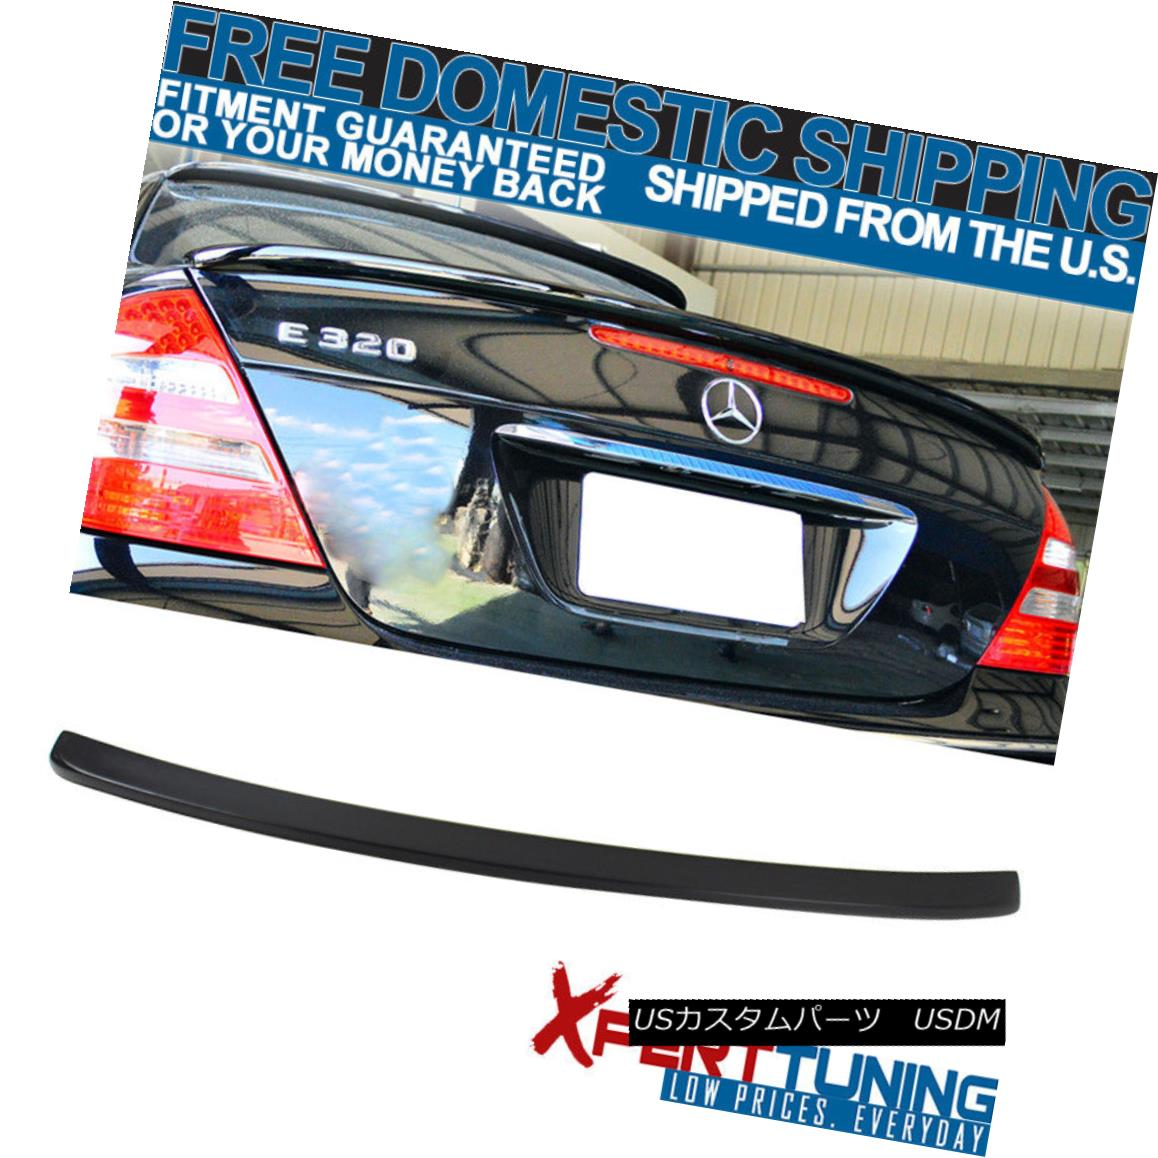 エアロパーツ Fit For 03-09 Mercedes-Benz E-Class W211 4Dr L Style Unpainted ABS Trunk Spoiler 03-09 Mercedes-Benz EクラスW211 4Dr Lスタイル未塗装ABSトランク・スポイラー